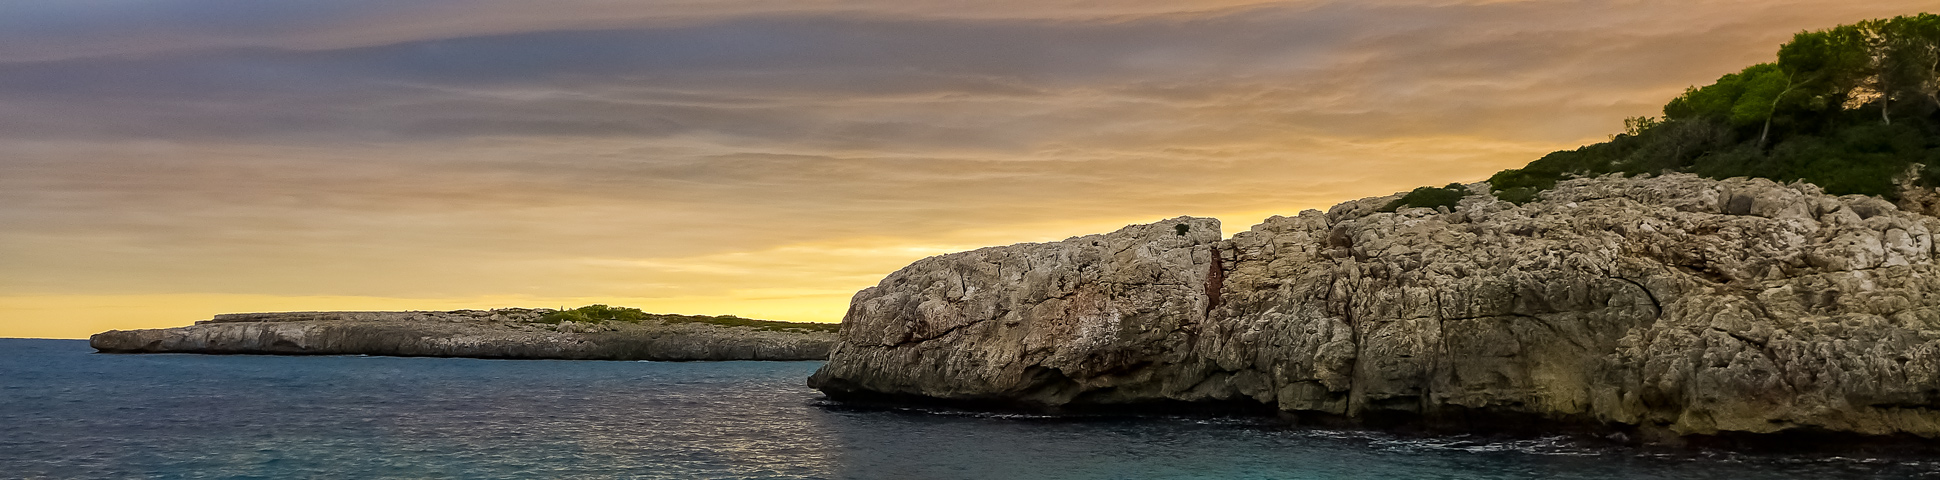 Panoramic view from Deep Water Solo Climbing in Mallorca, Spain